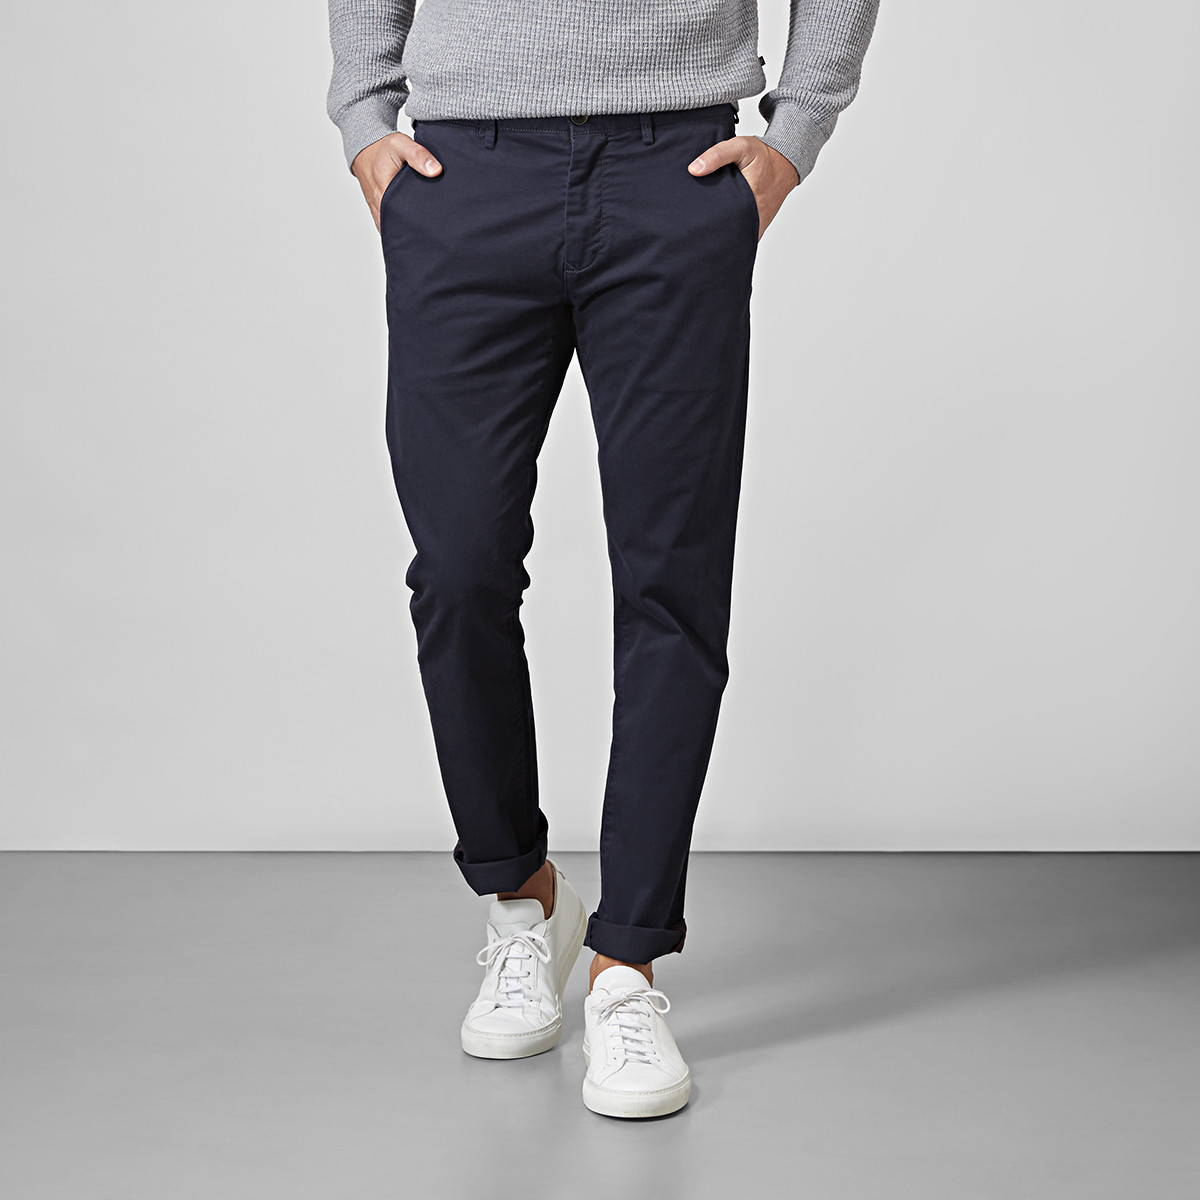 Slim fit chinos - mörkblå | East West | Brothers.se